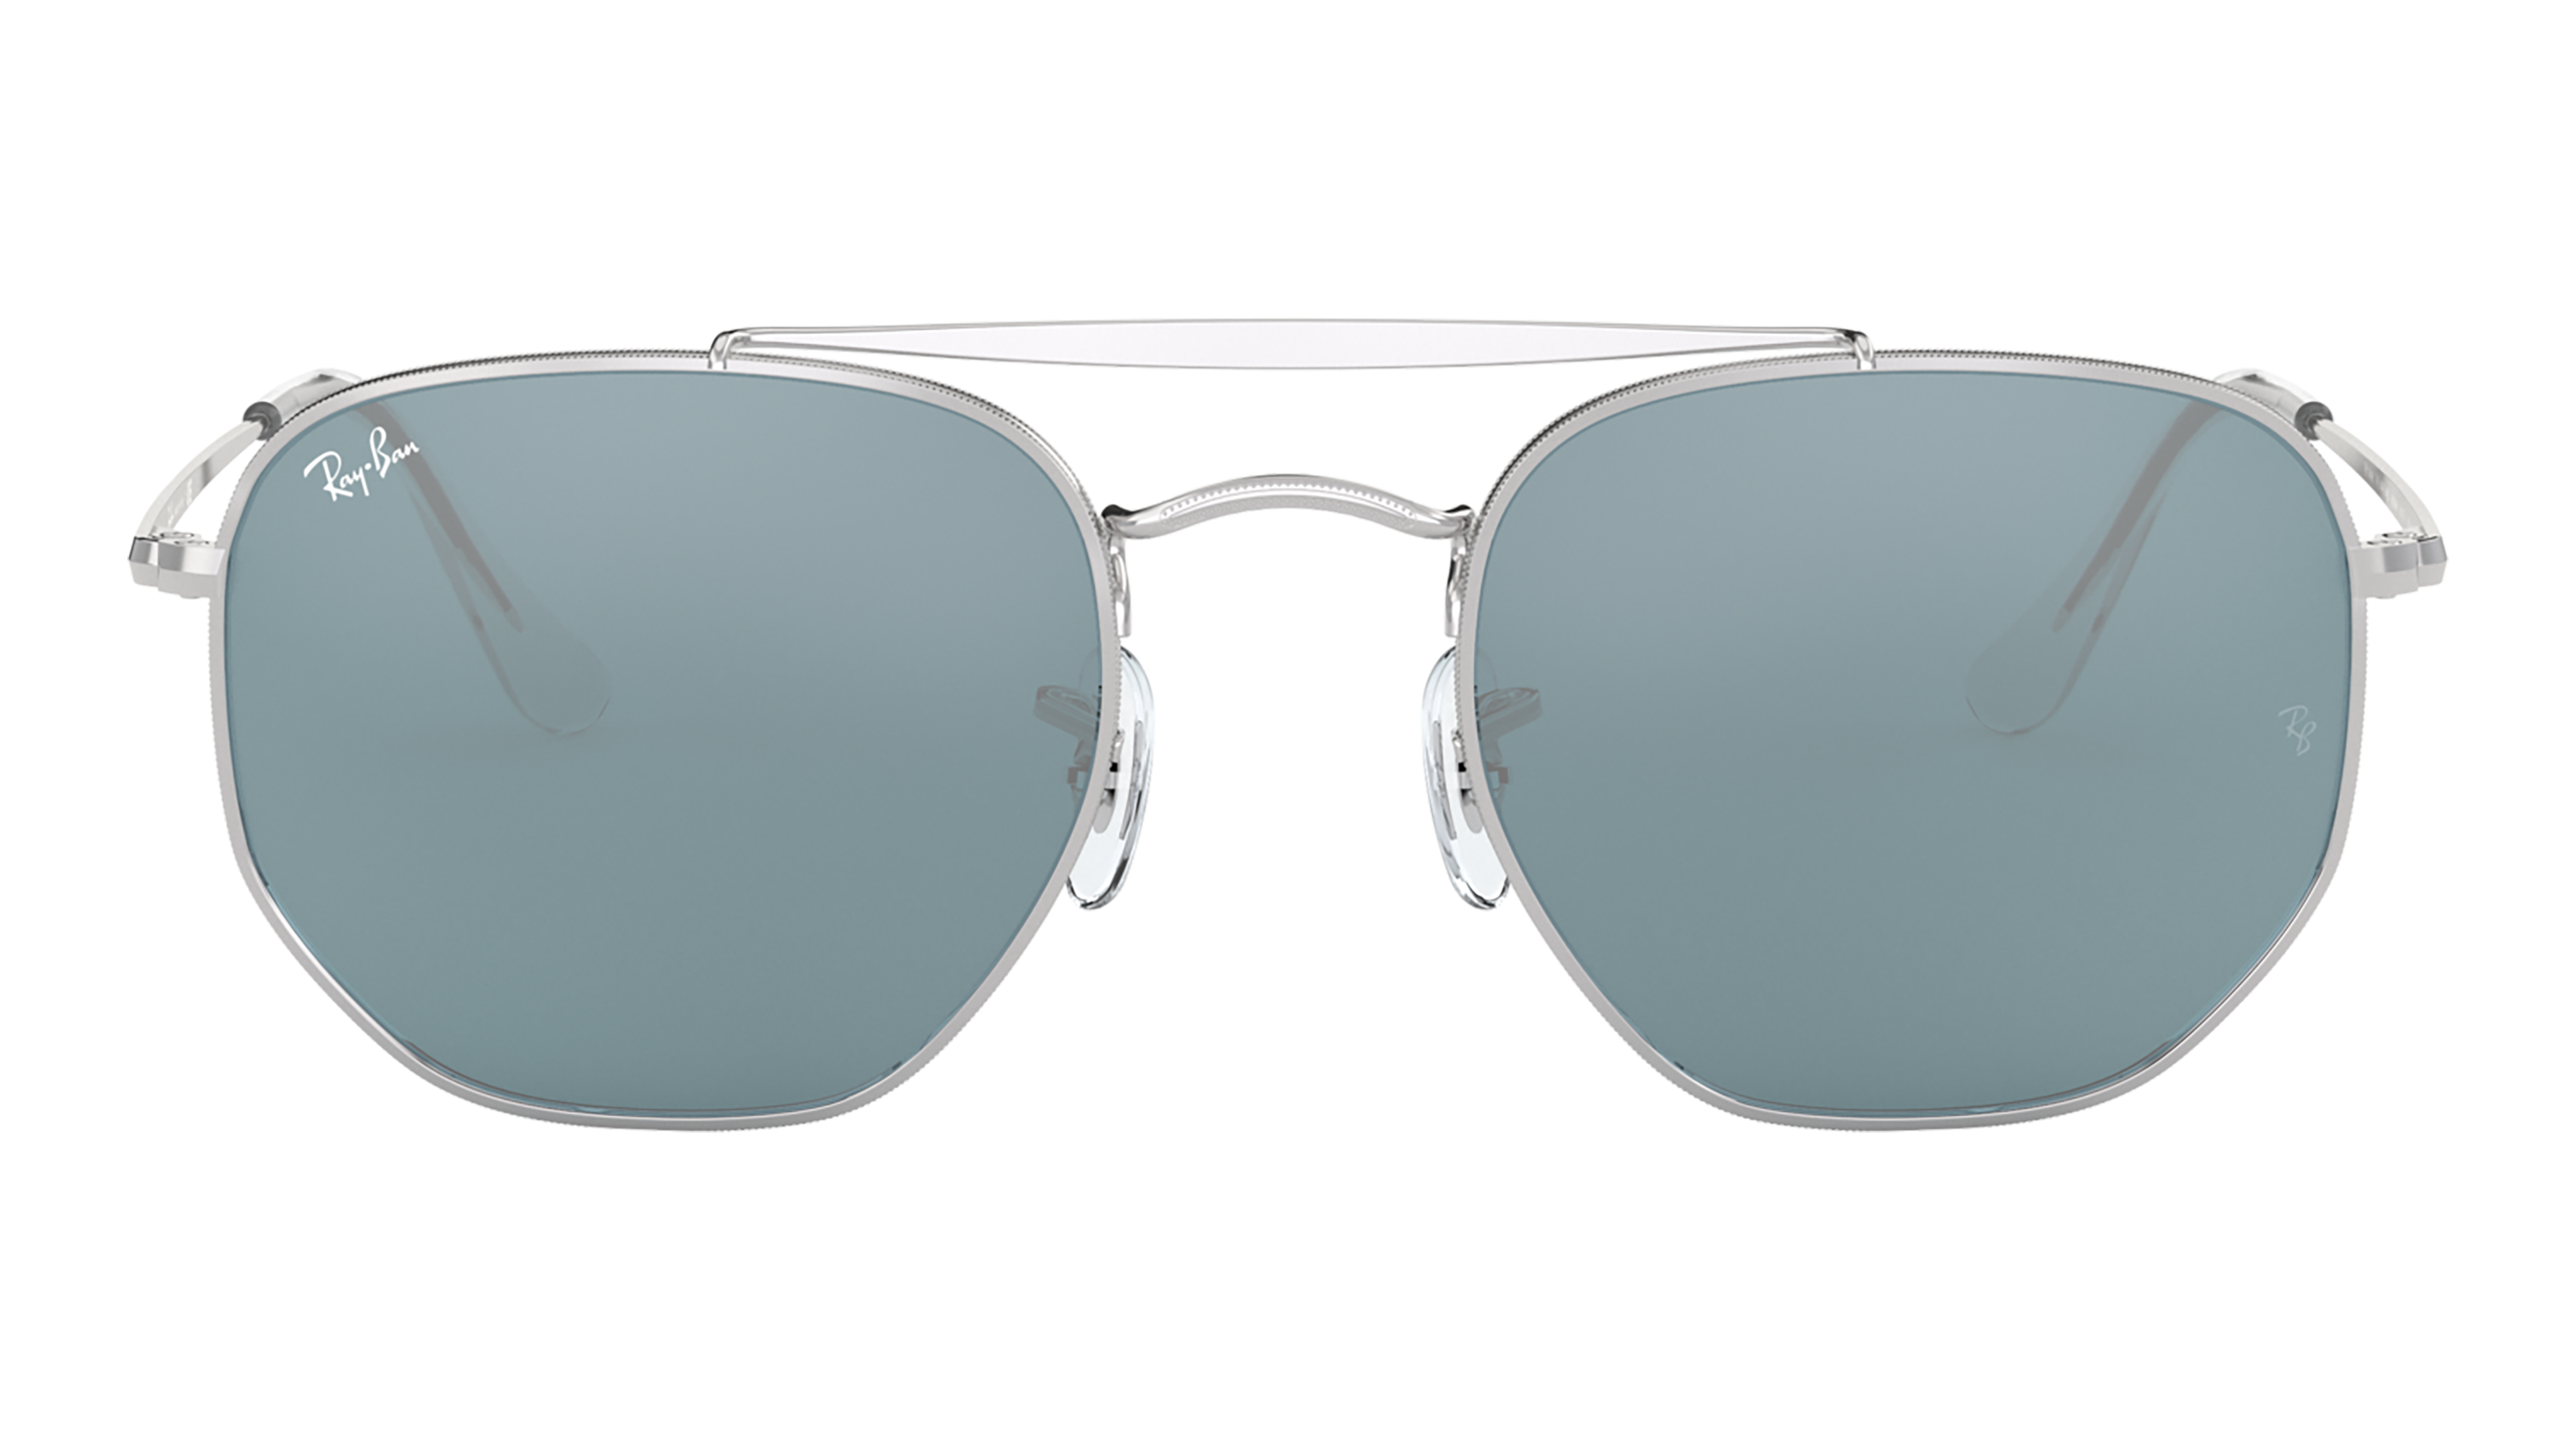 Front Ray-Ban Ray-Ban 0RB3648 003/56 54/21 Zilver/Blauw